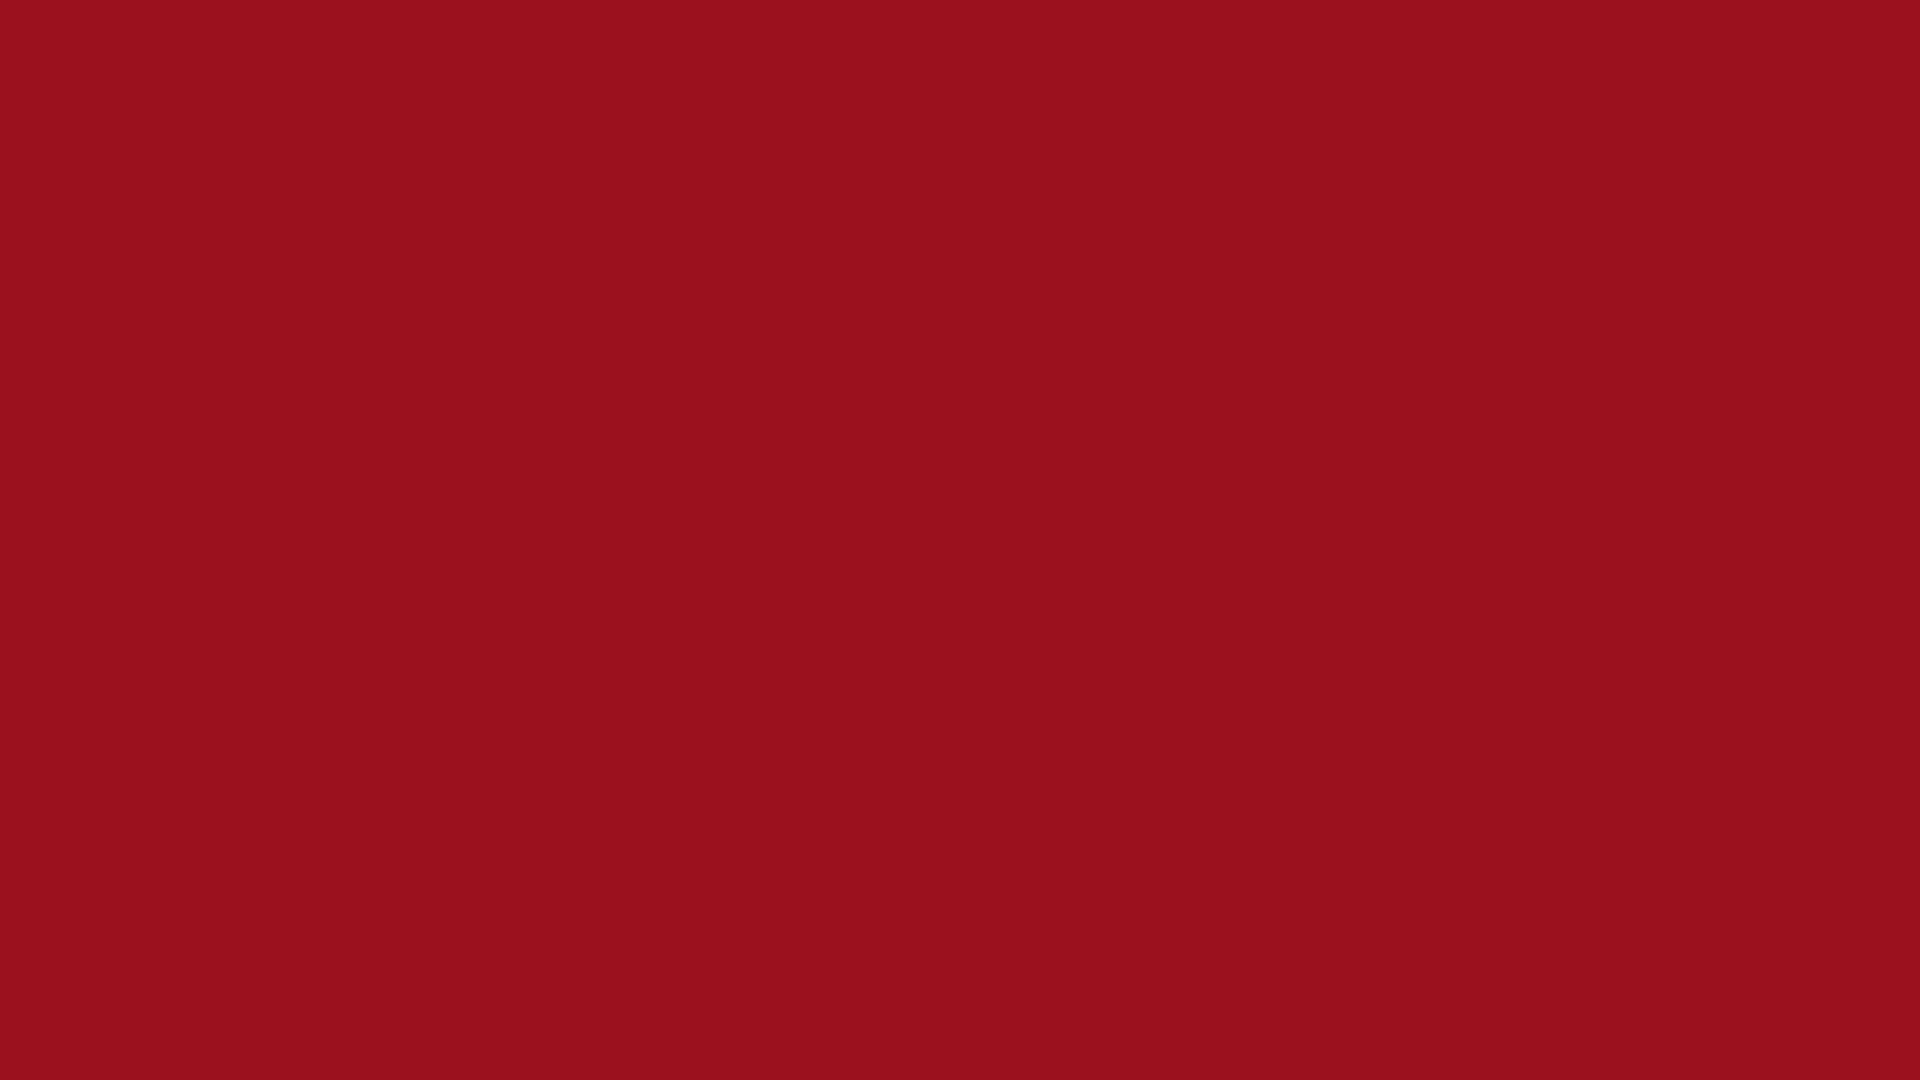 1920x1080 Ruby Red Solid Color Background